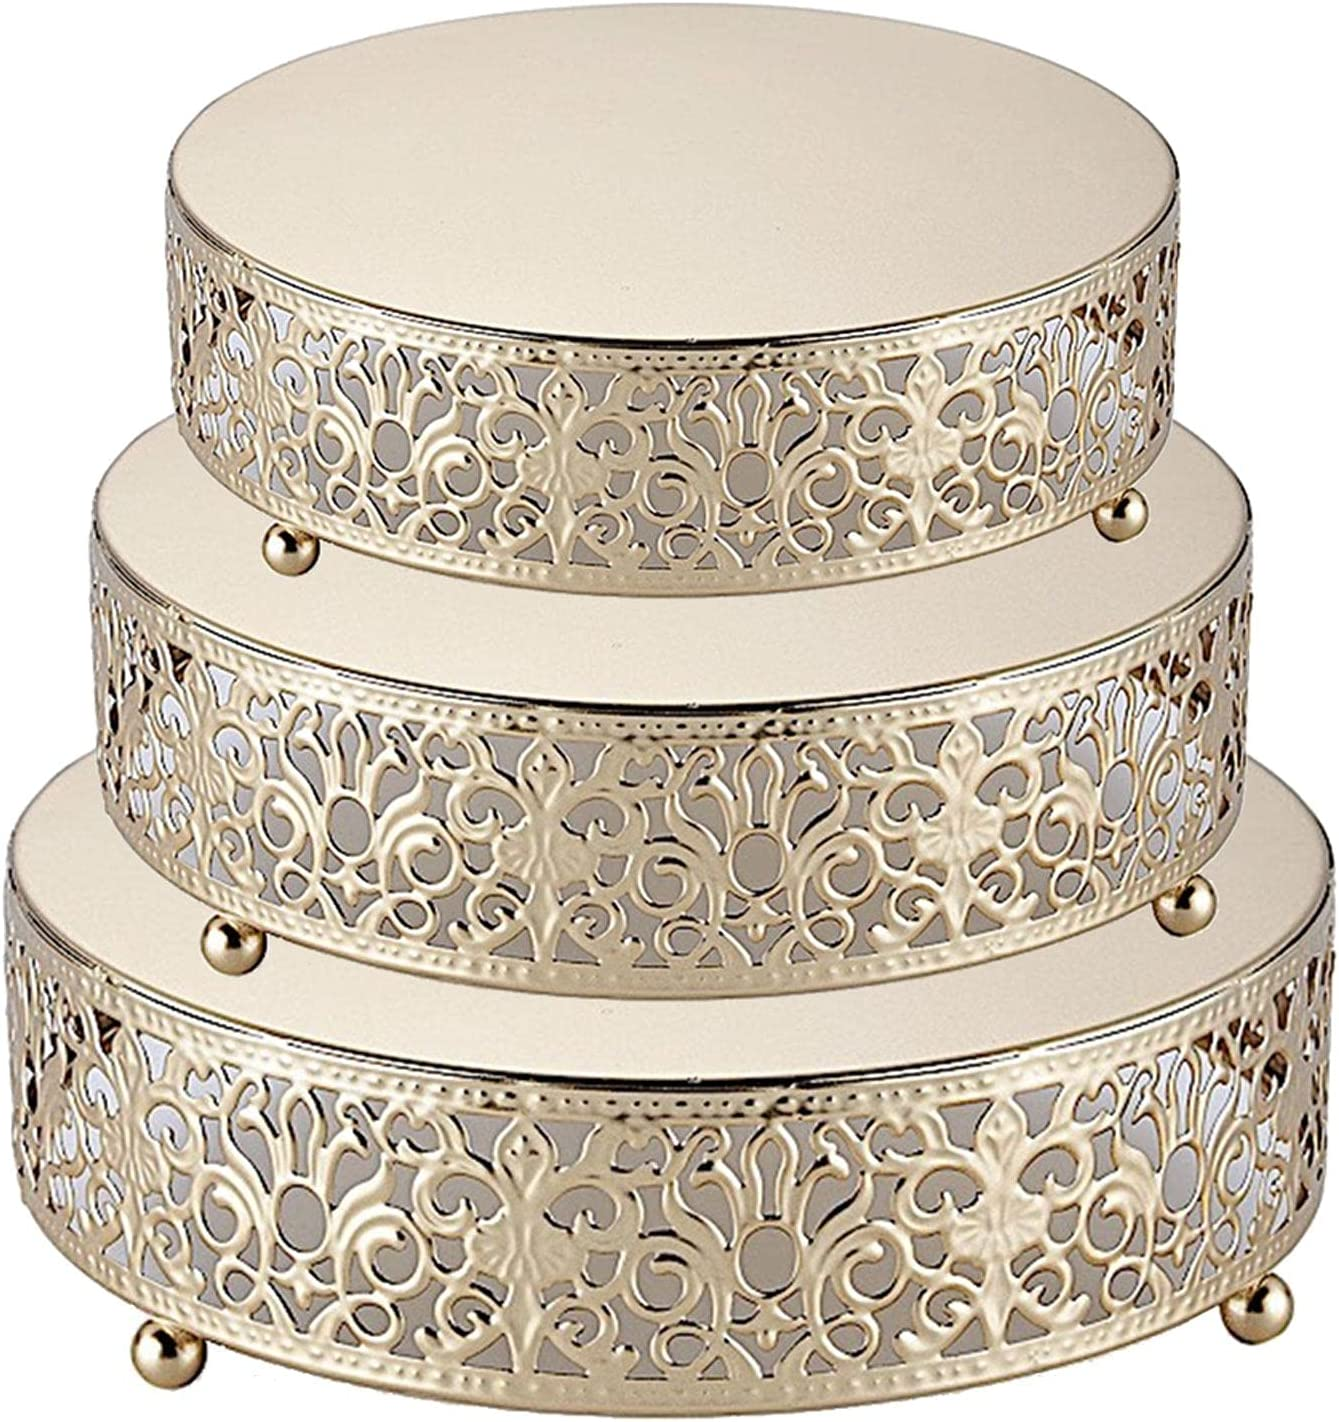 3pcs Cake Stands San Antonio Mall Set Max 50% OFF Round Display Dessert for Cupcake Can Stand